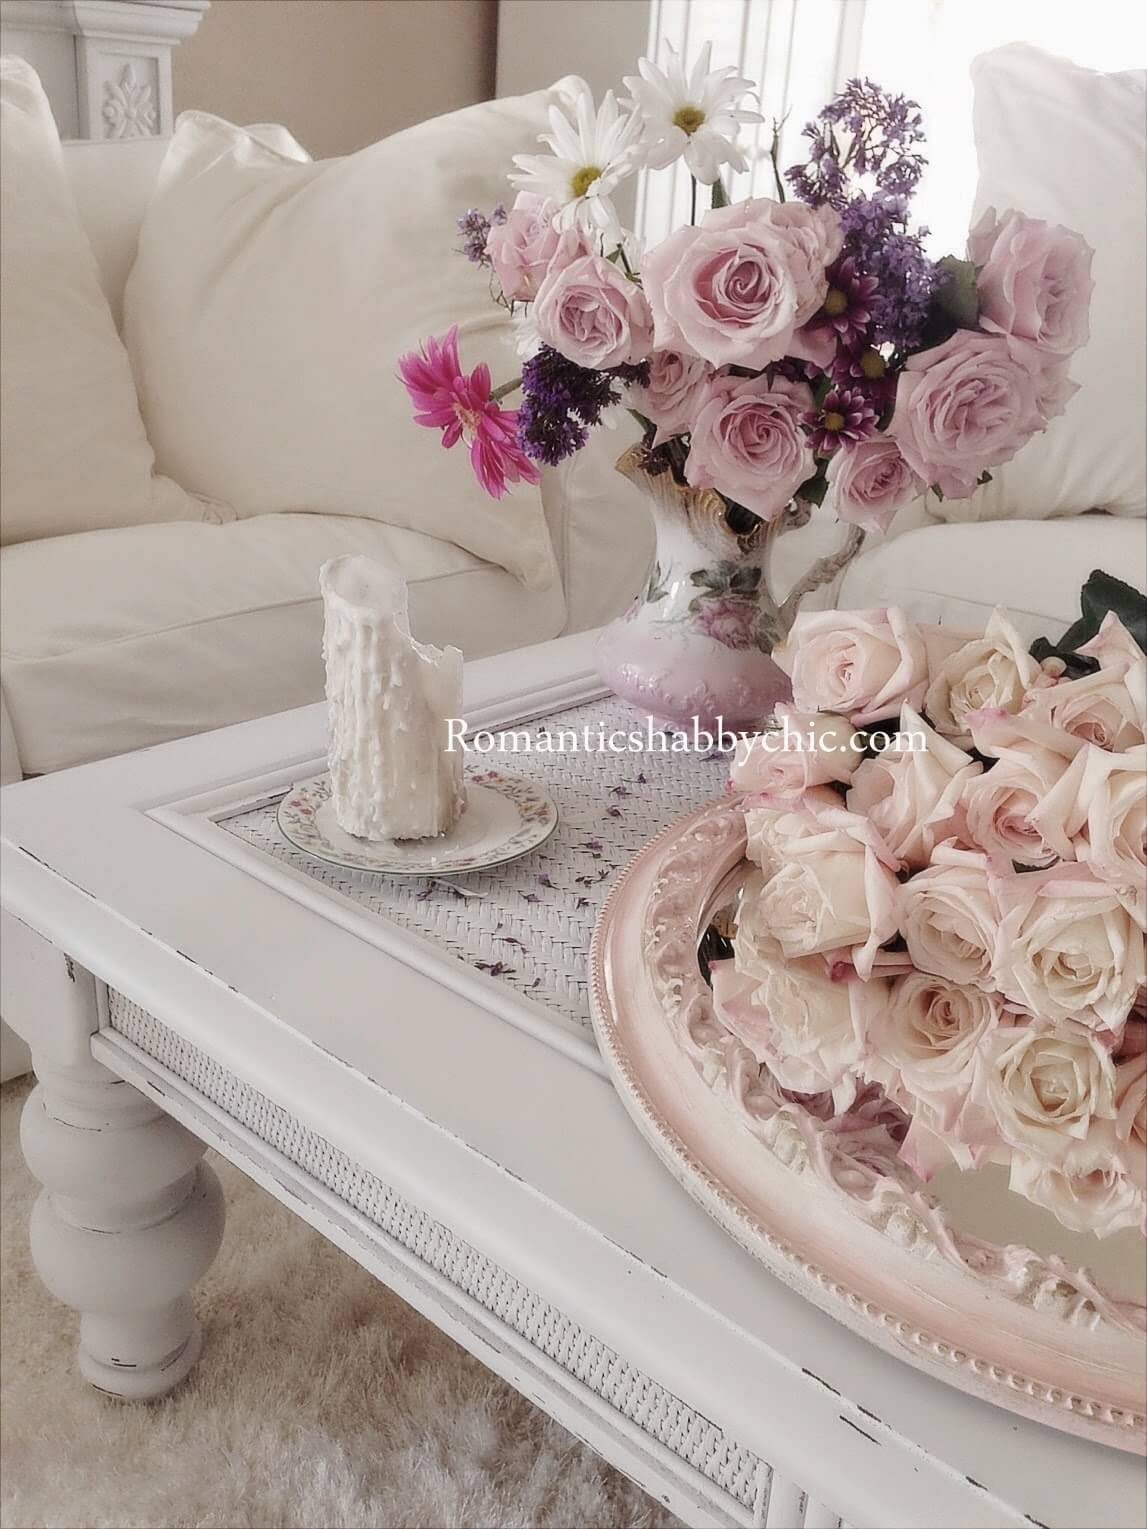 Lace Topped Table Featuring Shabby Chic Country Bouquets